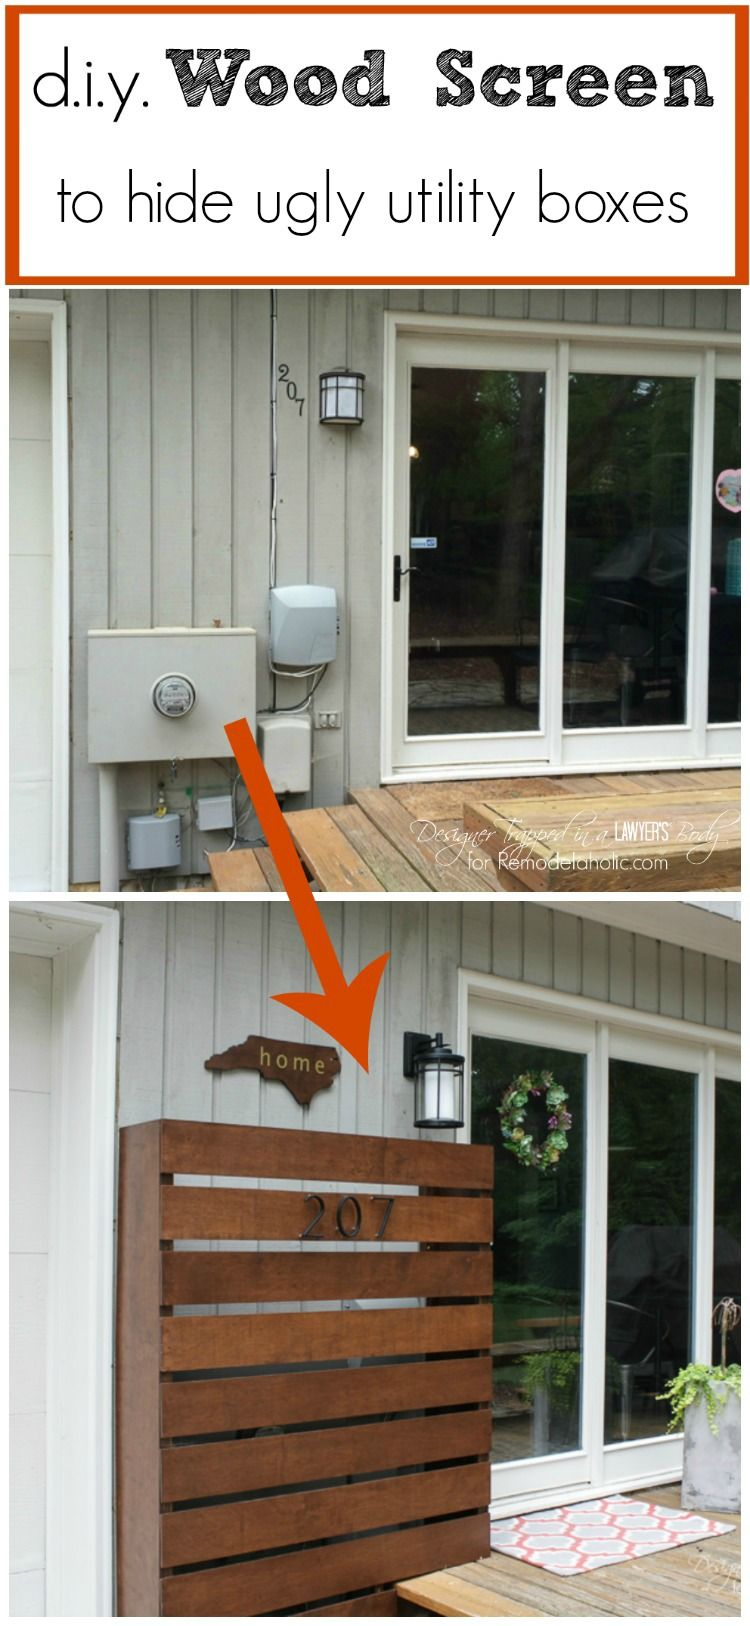 Info's : DIY-ify: 14 Amazing Storage Solutions for your Backyard!